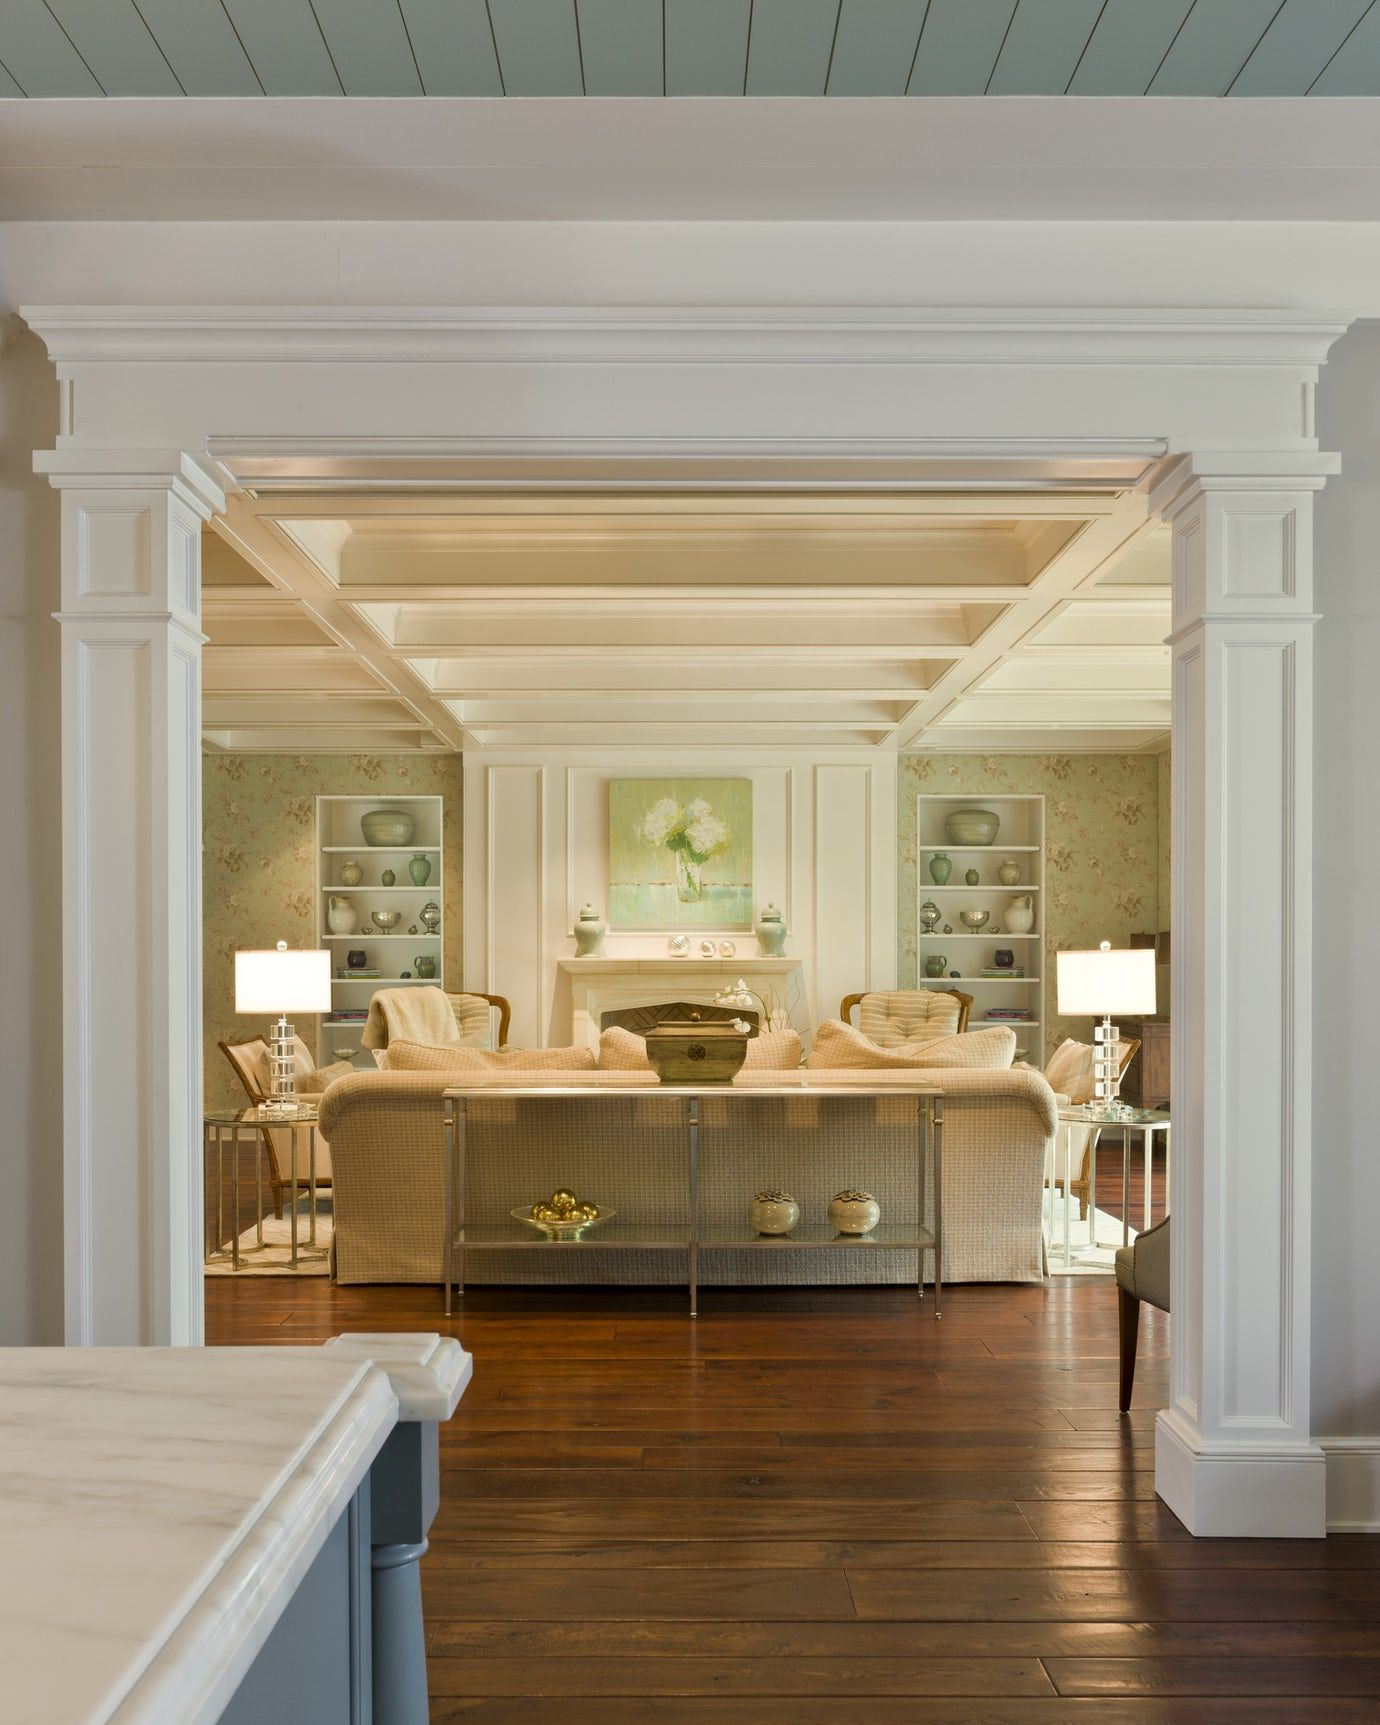 dutch colonial residence living transitional by harrison design rh pinterest com colonial door trim interior colonial interior trim colors